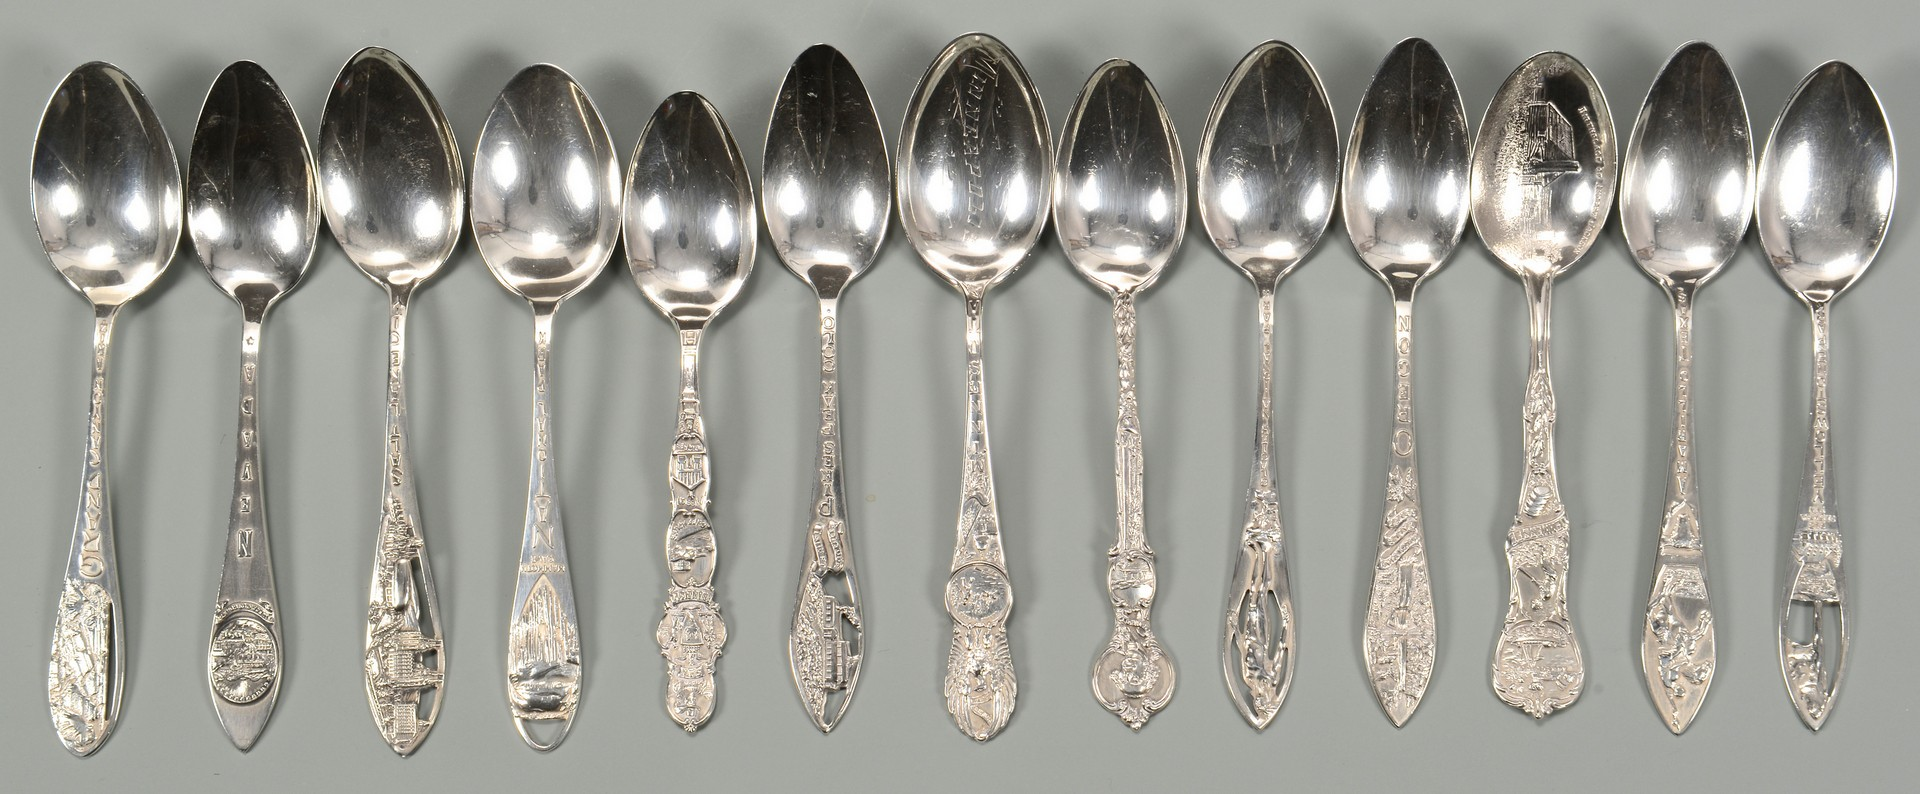 Lot 809: Lunt Sweetheart Rose flatware plus souvenir spoons